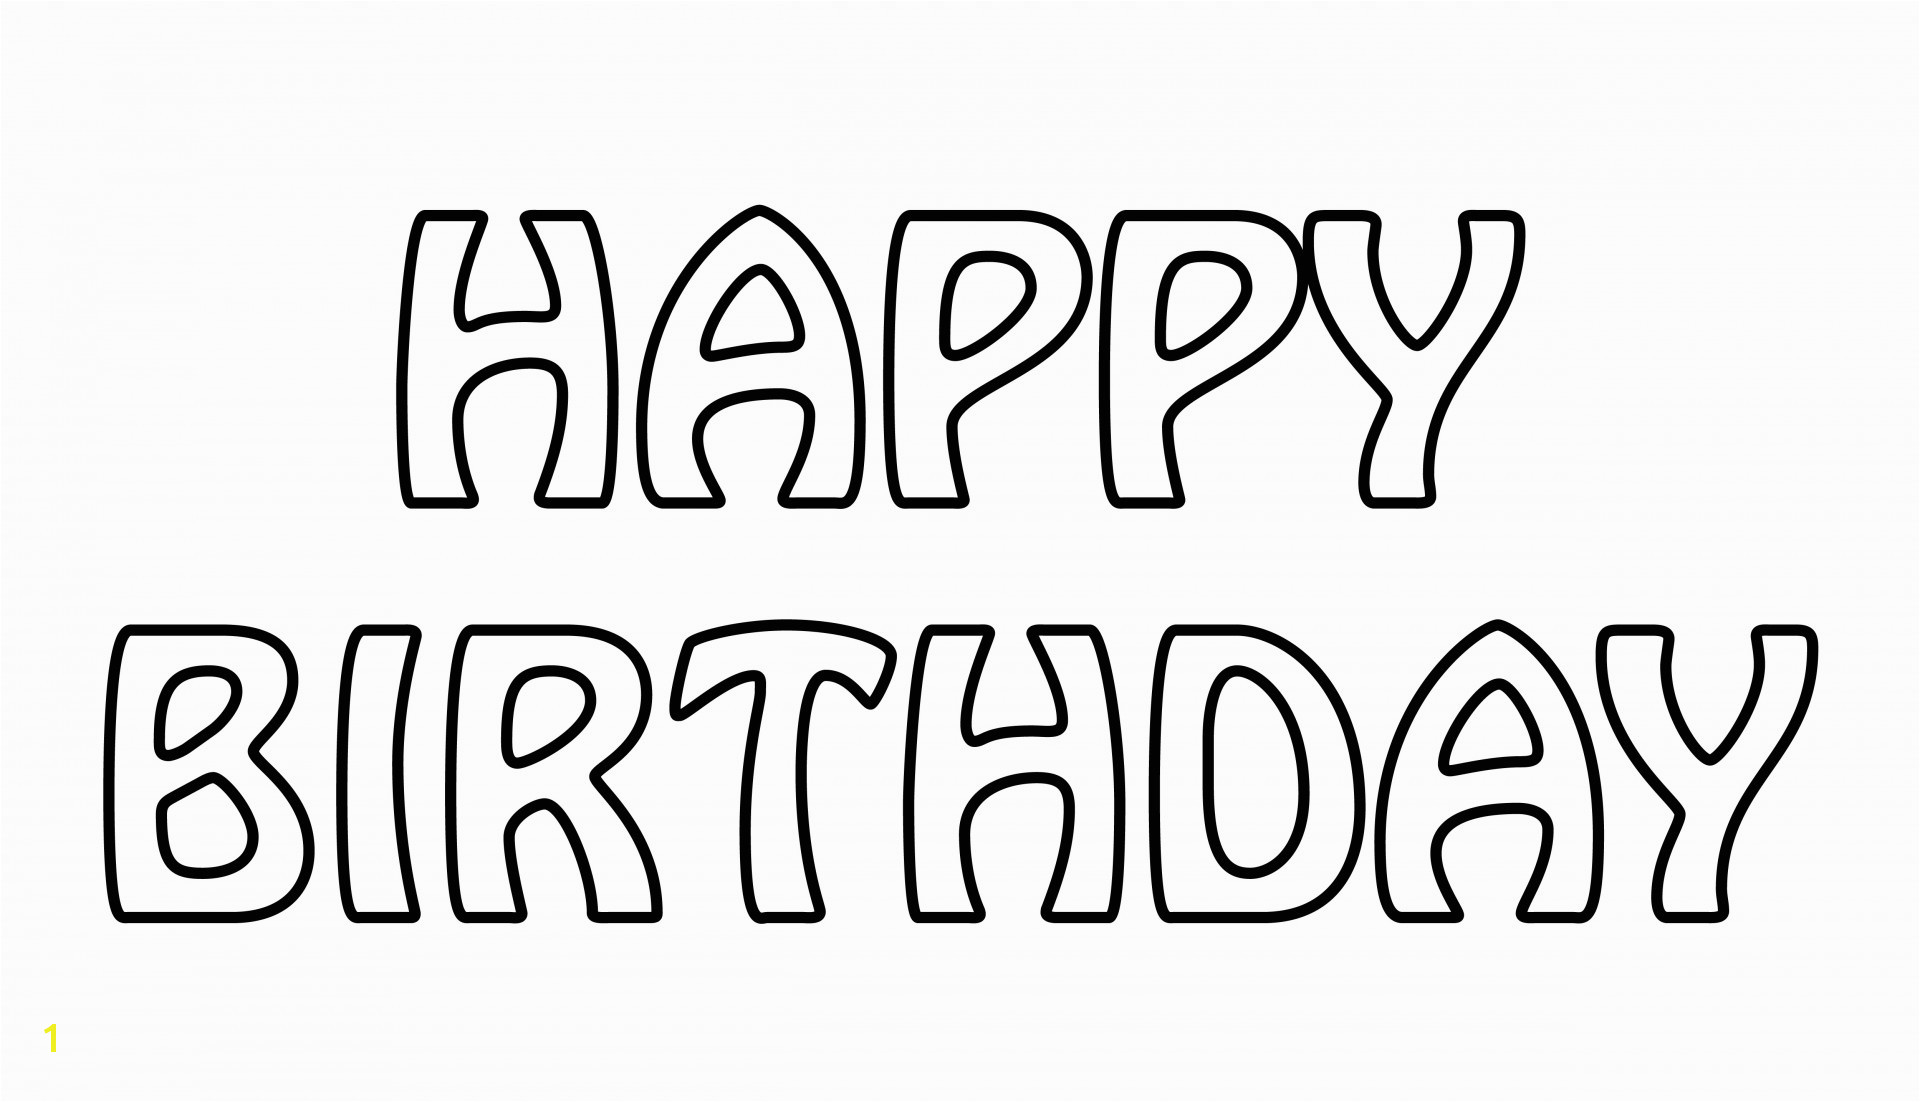 view image image= &picture=happy birthday text outline